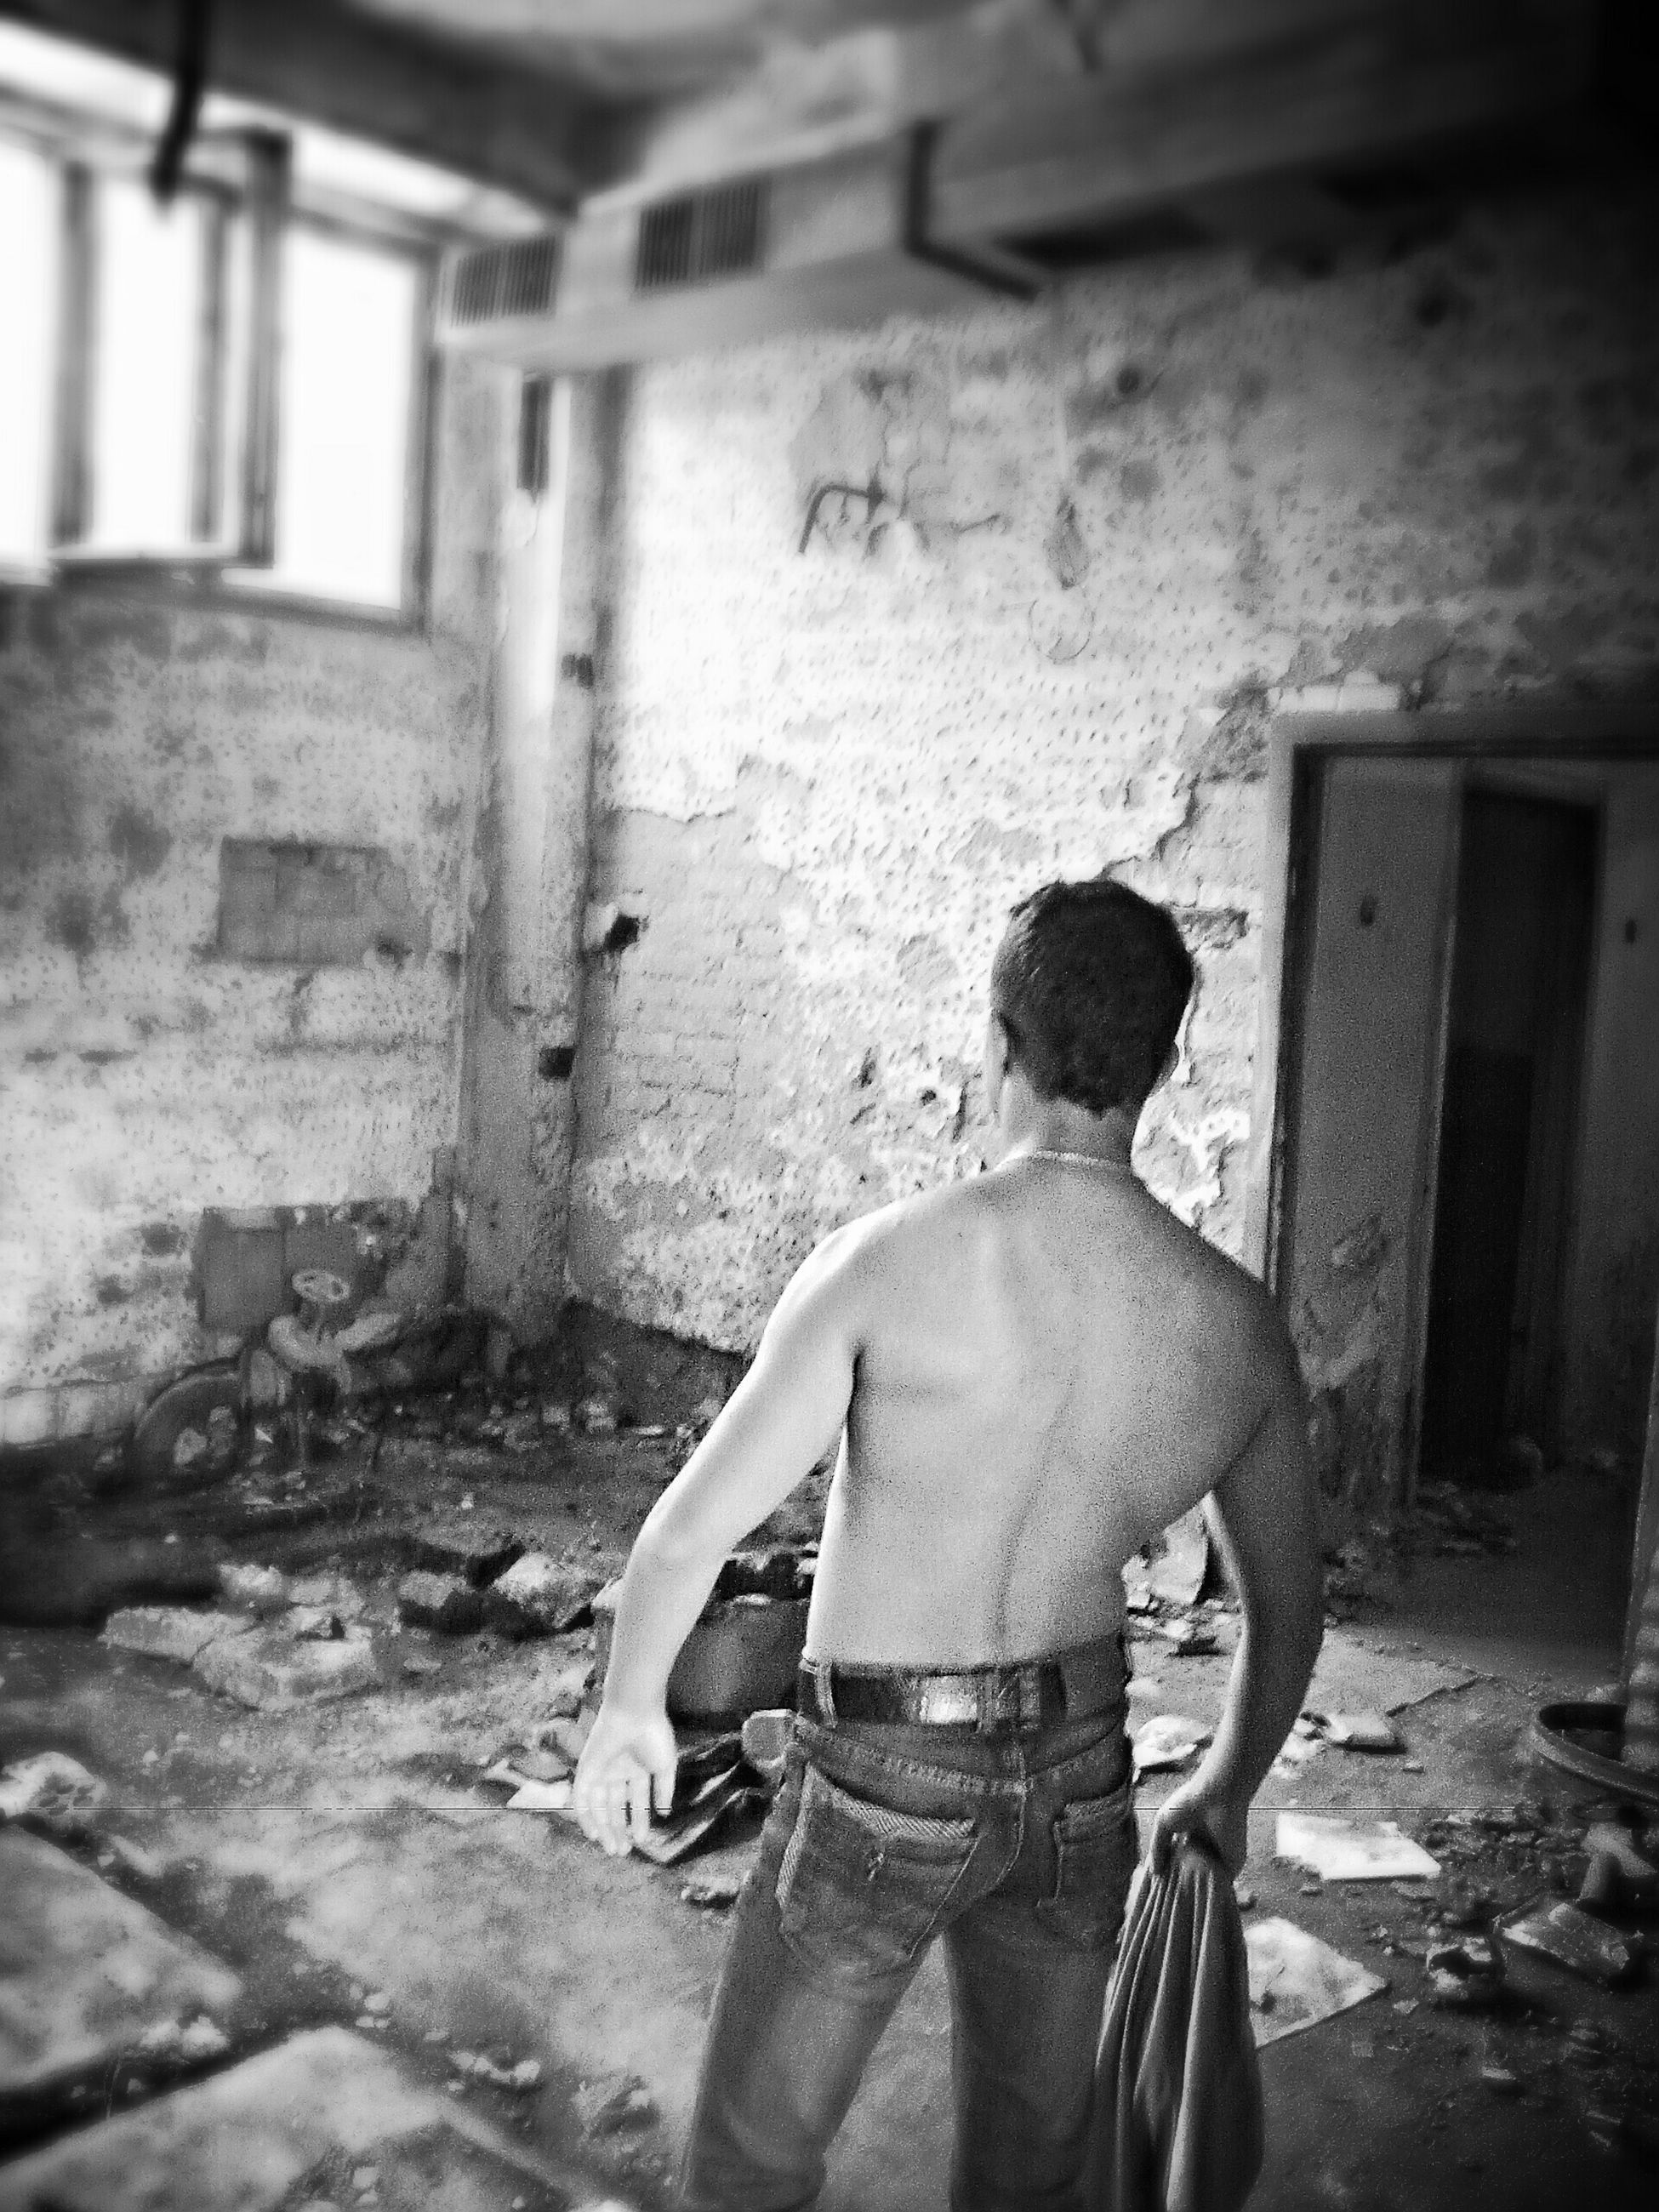 lifestyles, casual clothing, built structure, architecture, leisure activity, standing, rear view, full length, indoors, men, abandoned, three quarter length, building exterior, holding, wall - building feature, side view, day, old